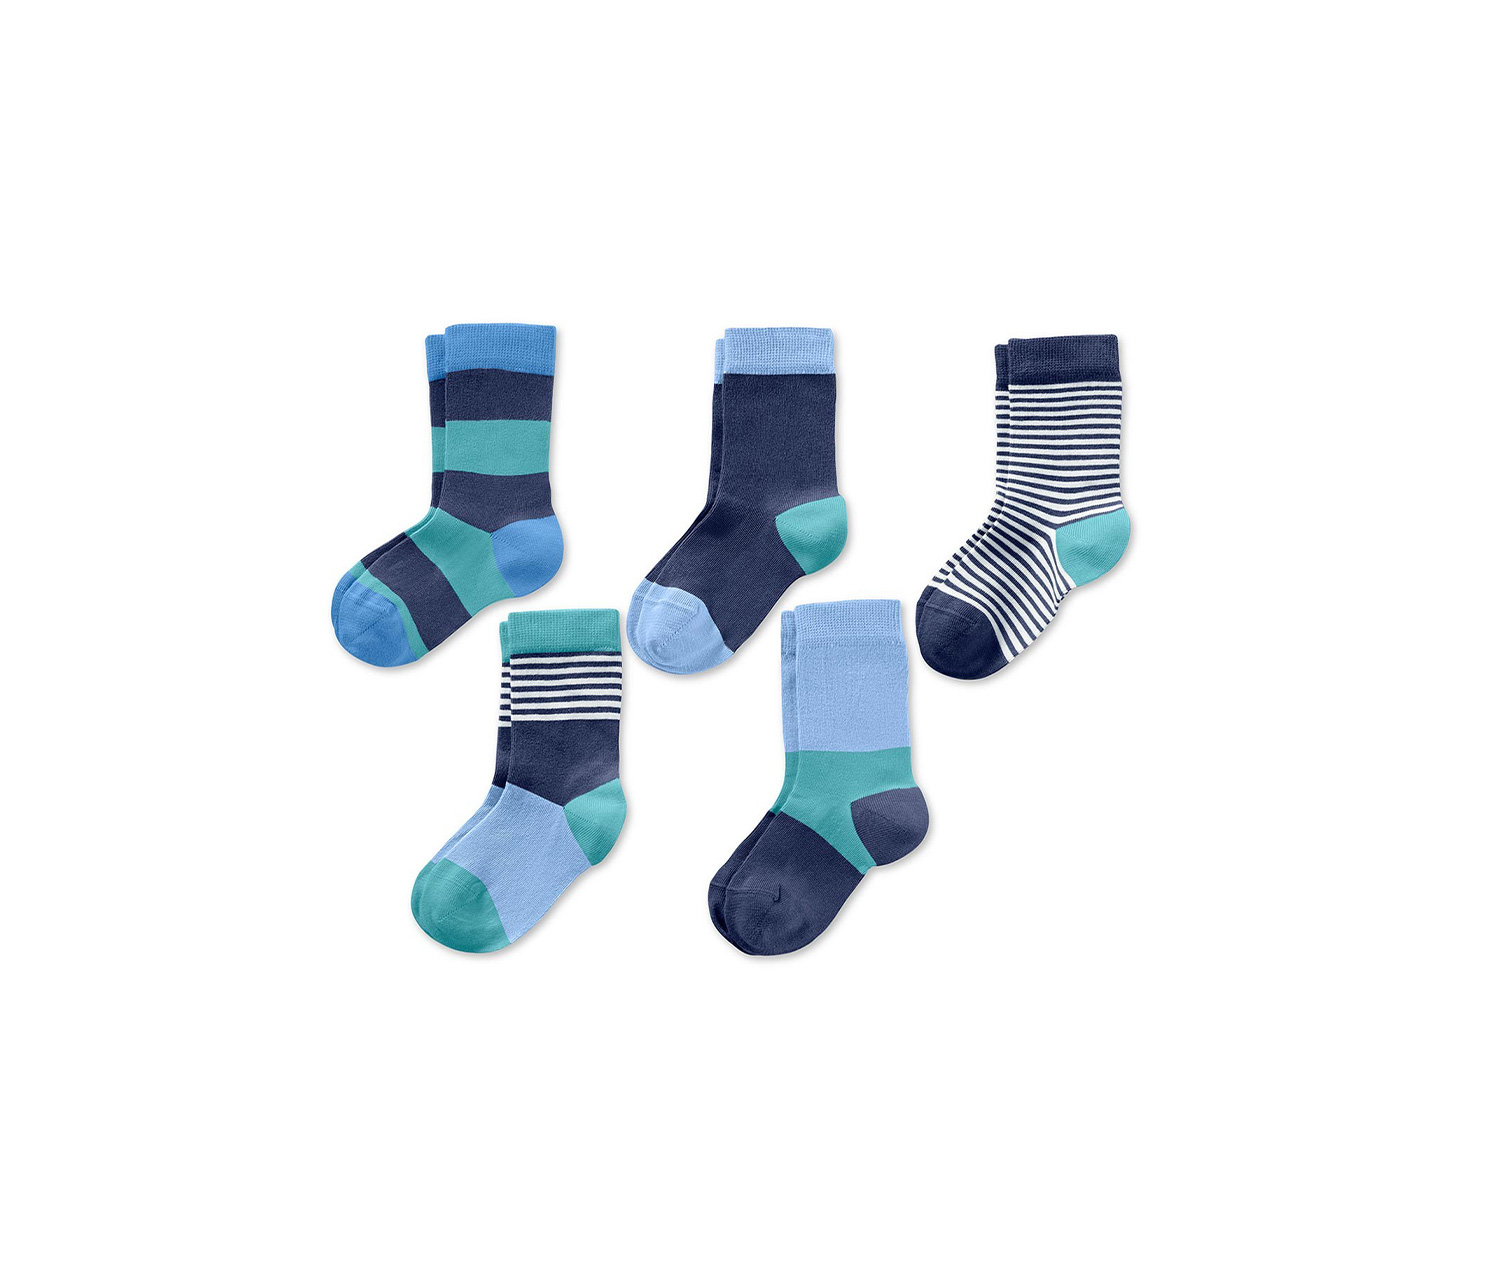 Toddler Boys Socks Set of 5, Blue/Green